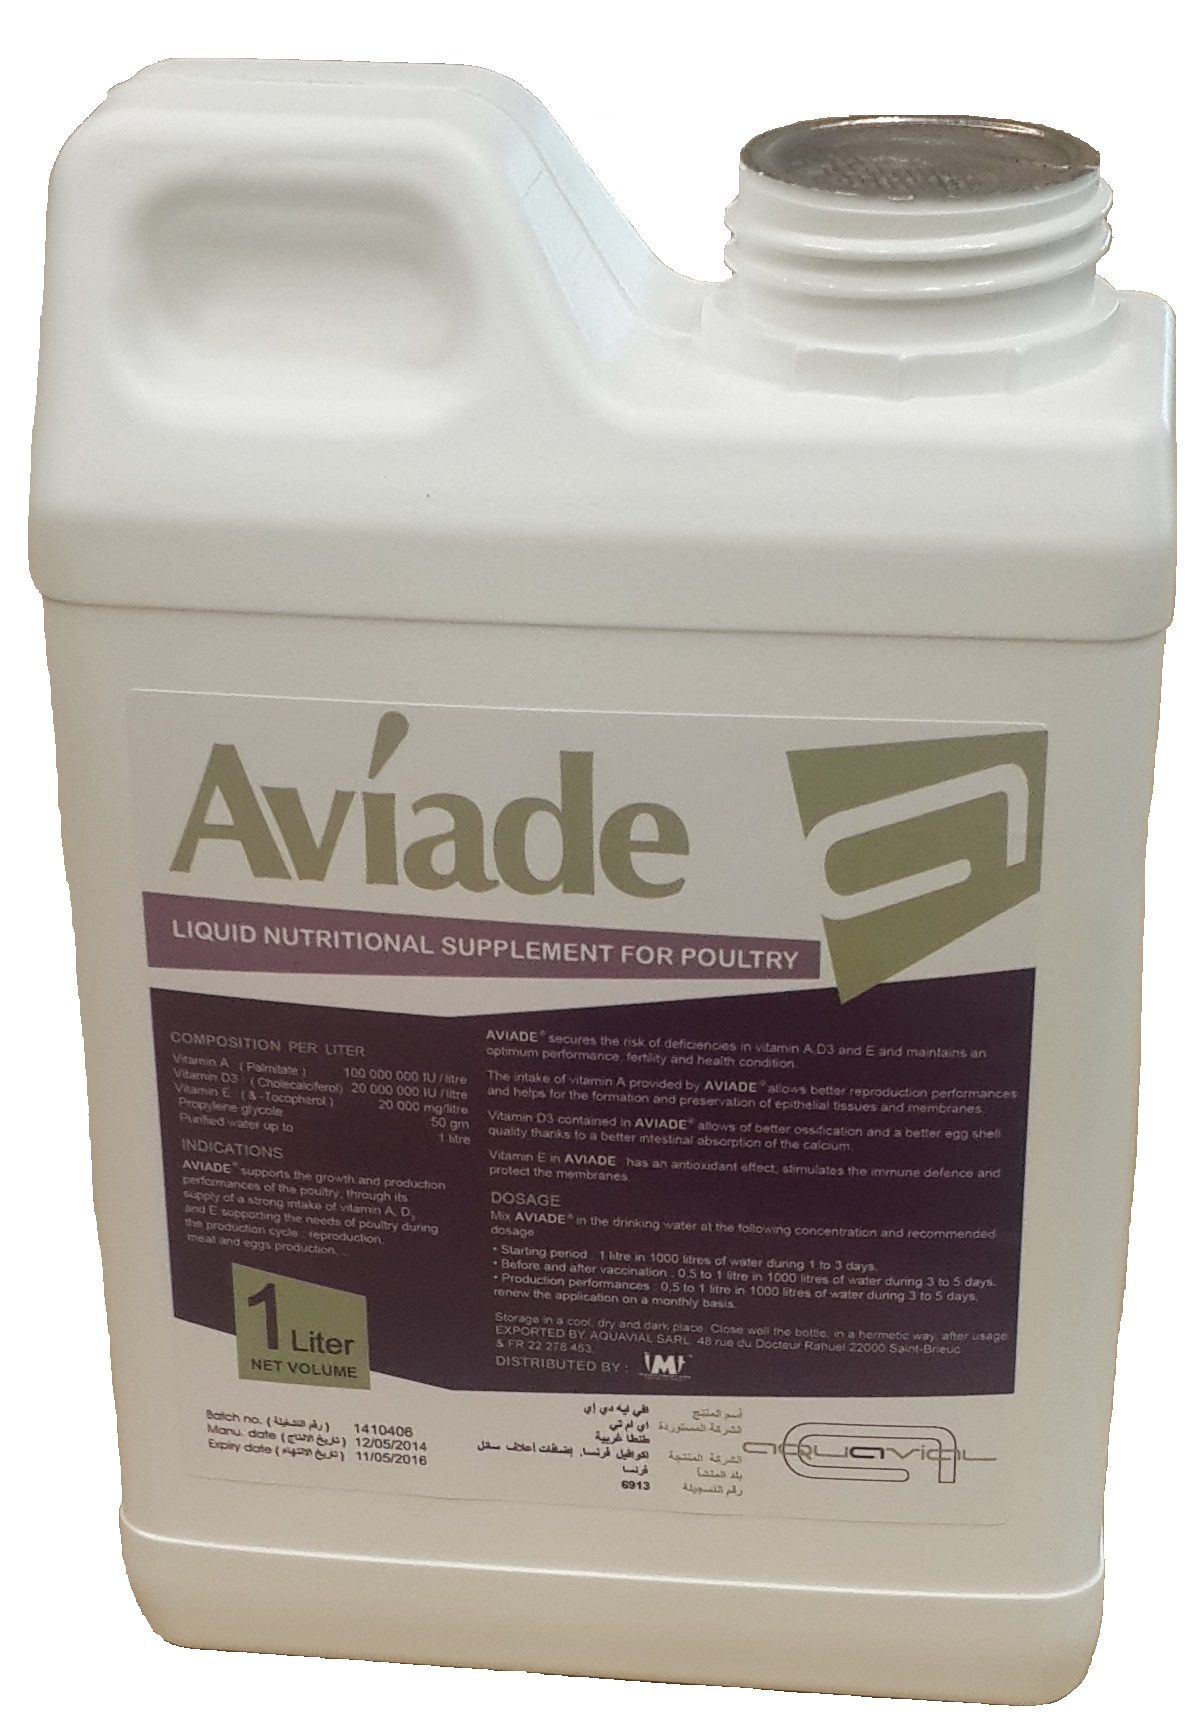 Aviade - Aquavial liquid nutritional supplement for poultry